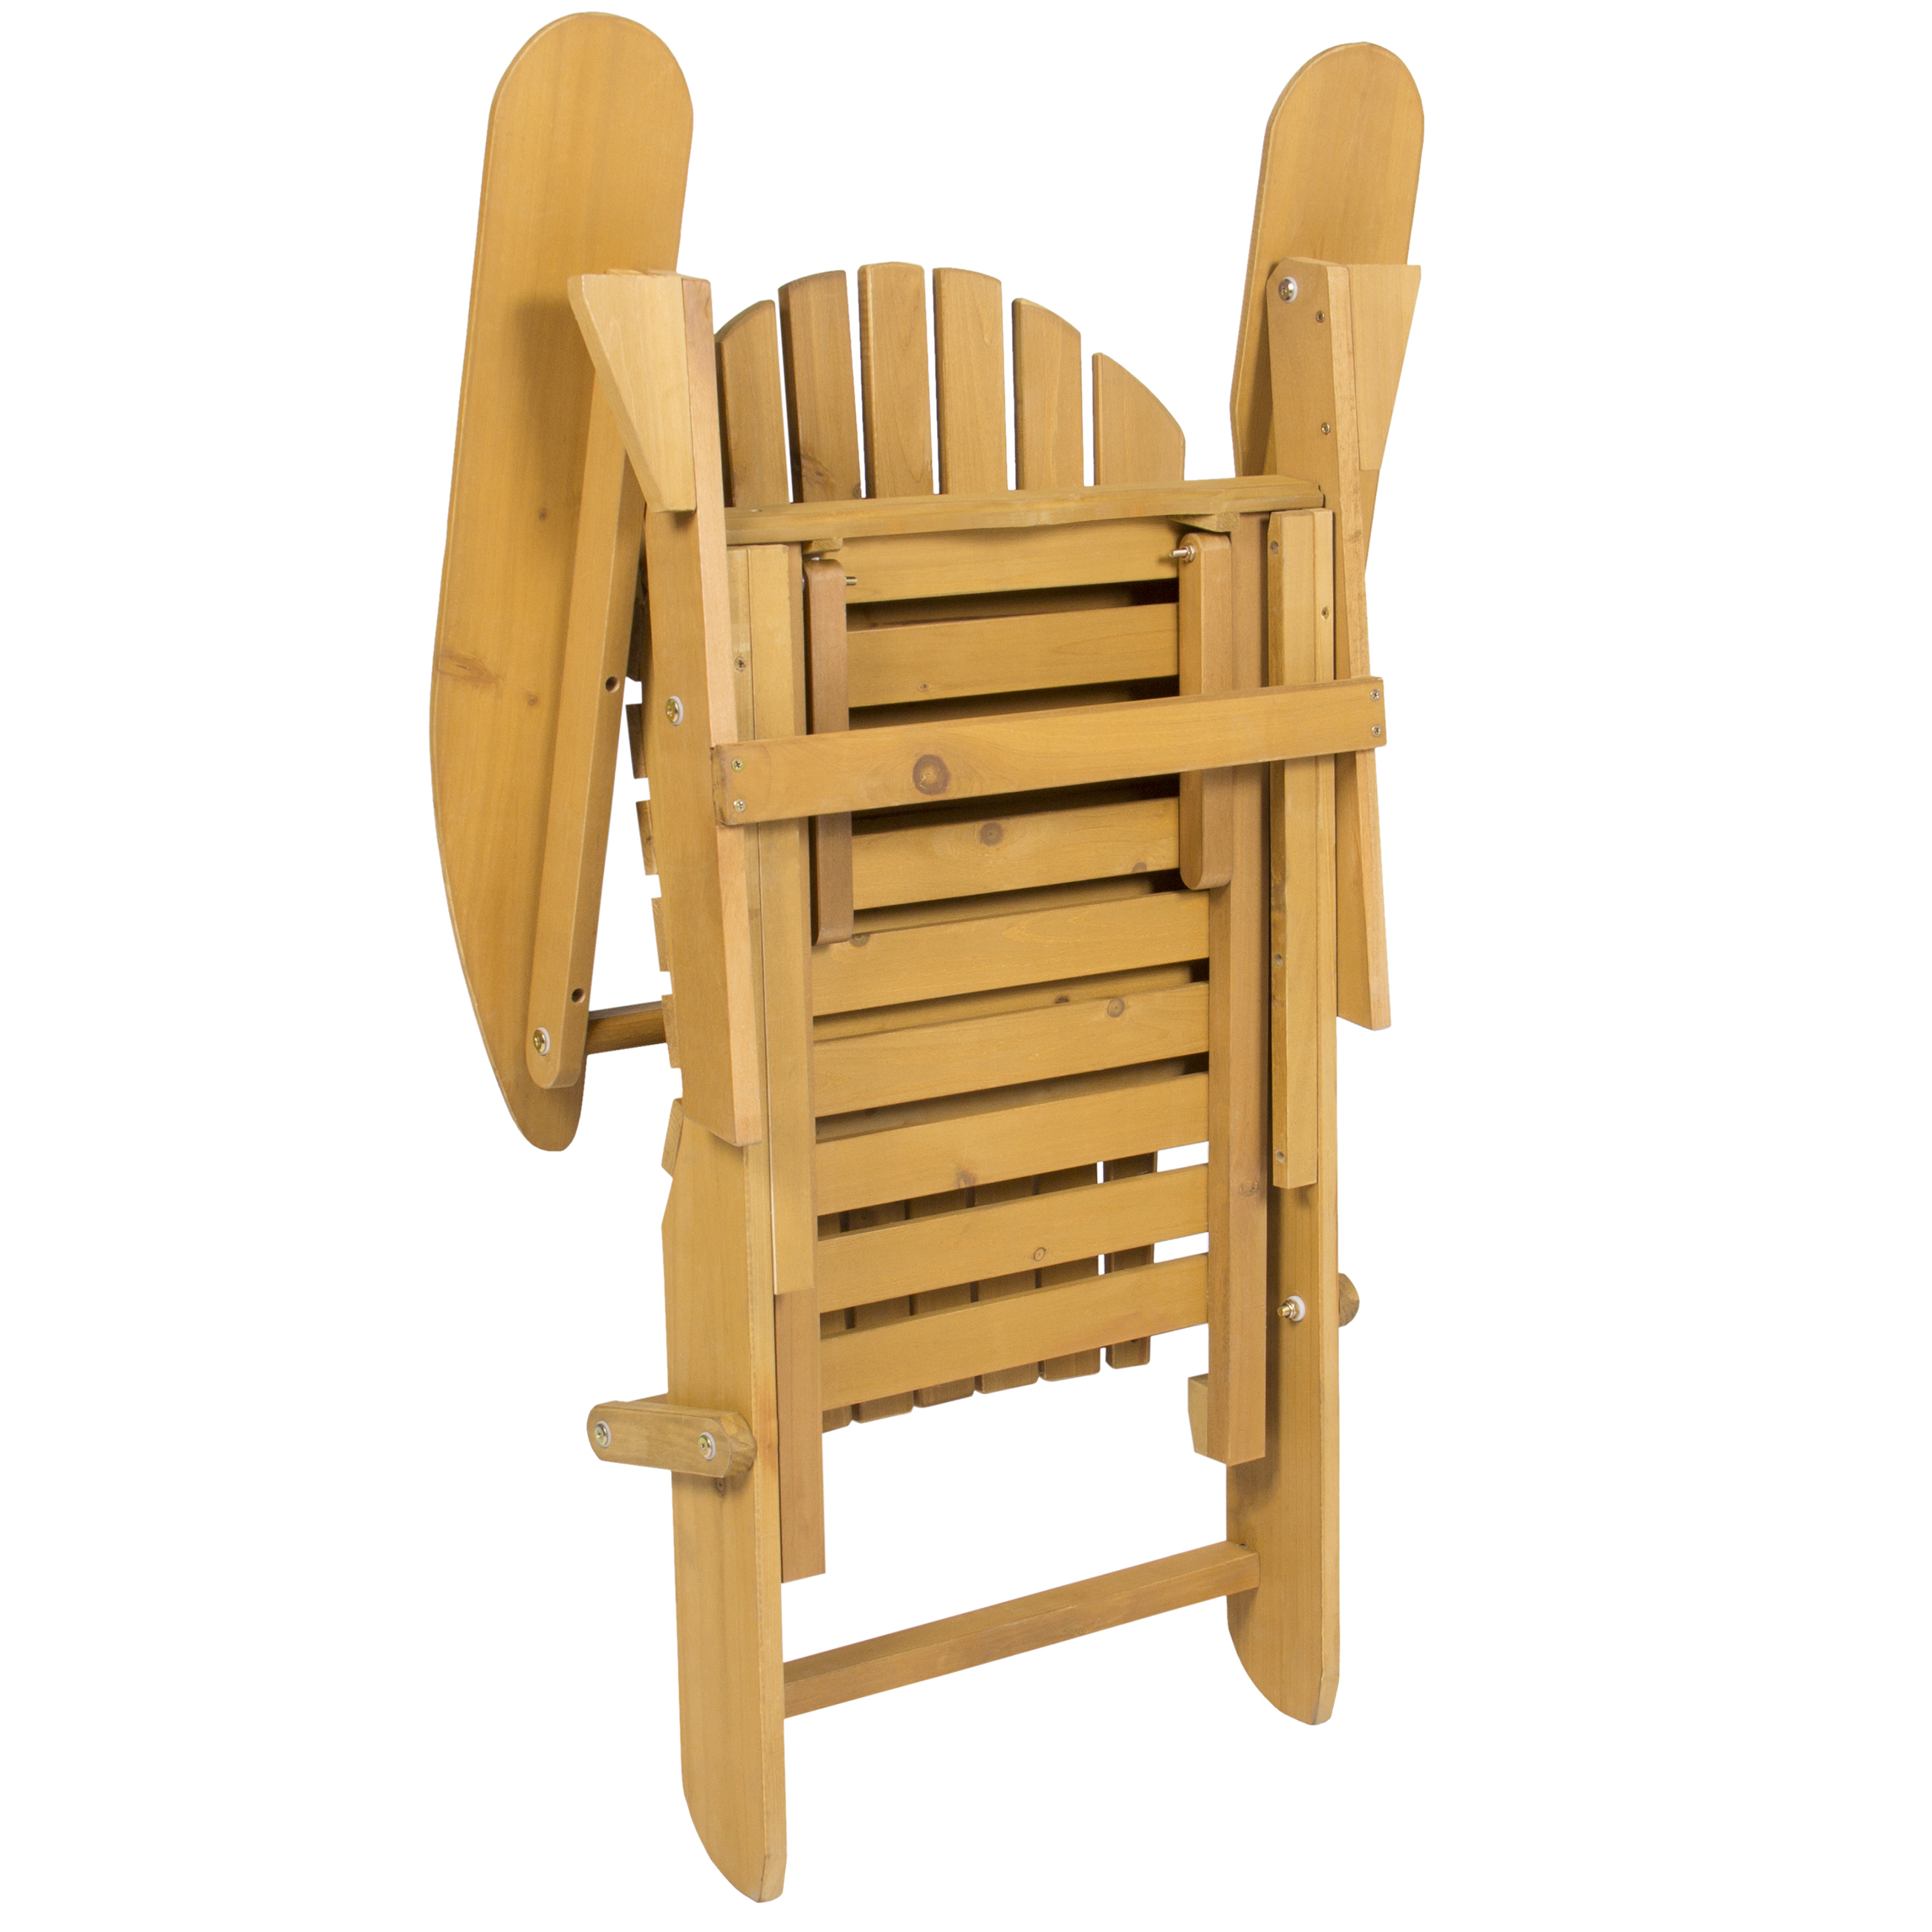 Miraculous Best Choice Products Foldable Wood Adirondack Chair W Pull Cjindustries Chair Design For Home Cjindustriesco